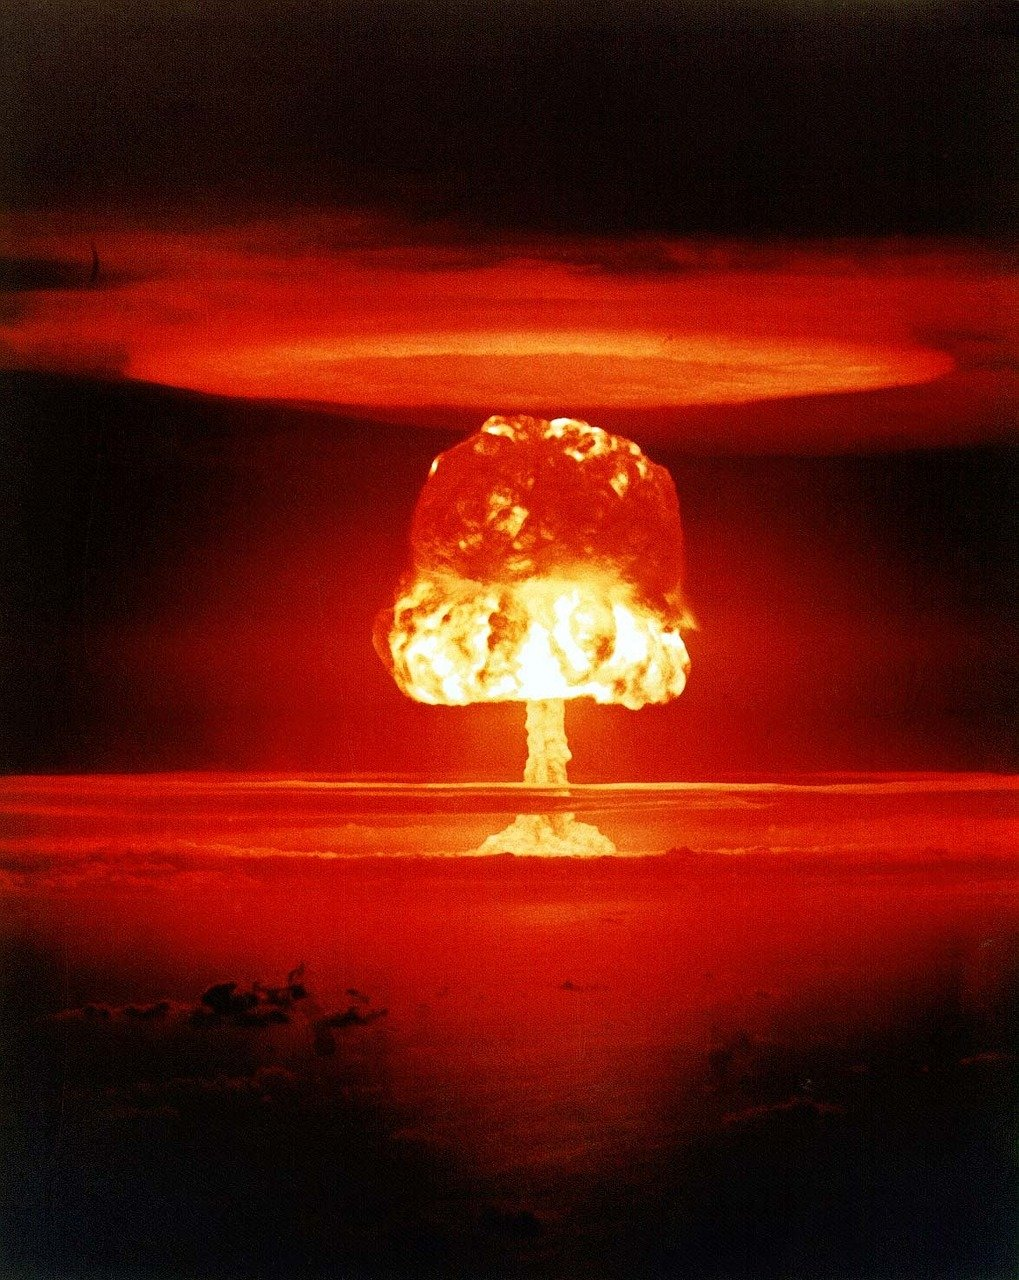 Withering Indian Nuclear Safety & Security: Cause for International Concern